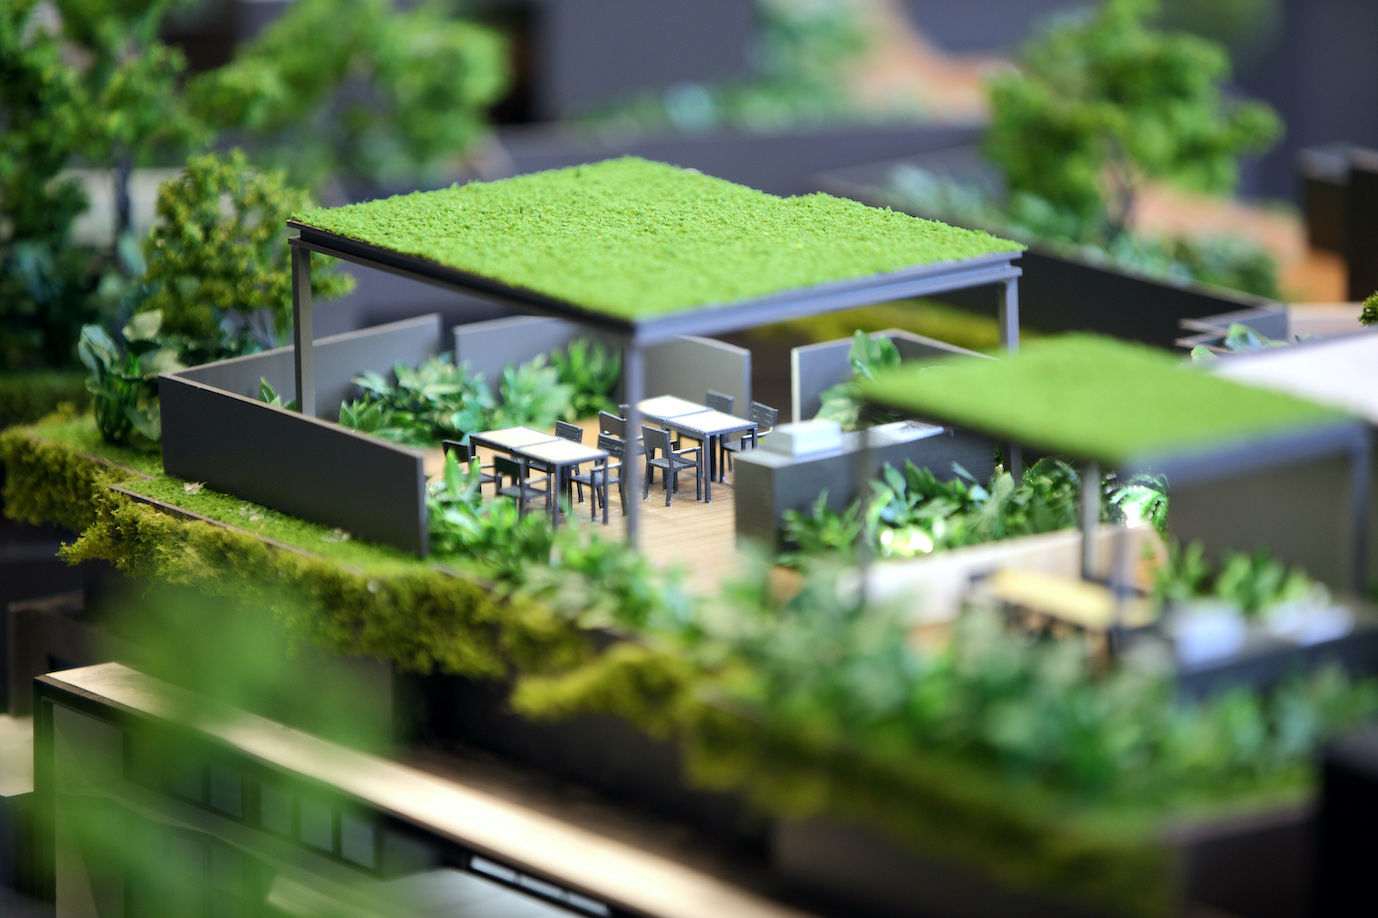 DAINTREE-RESIDENCE-scale-model - EDGEPROP SINGAPORE